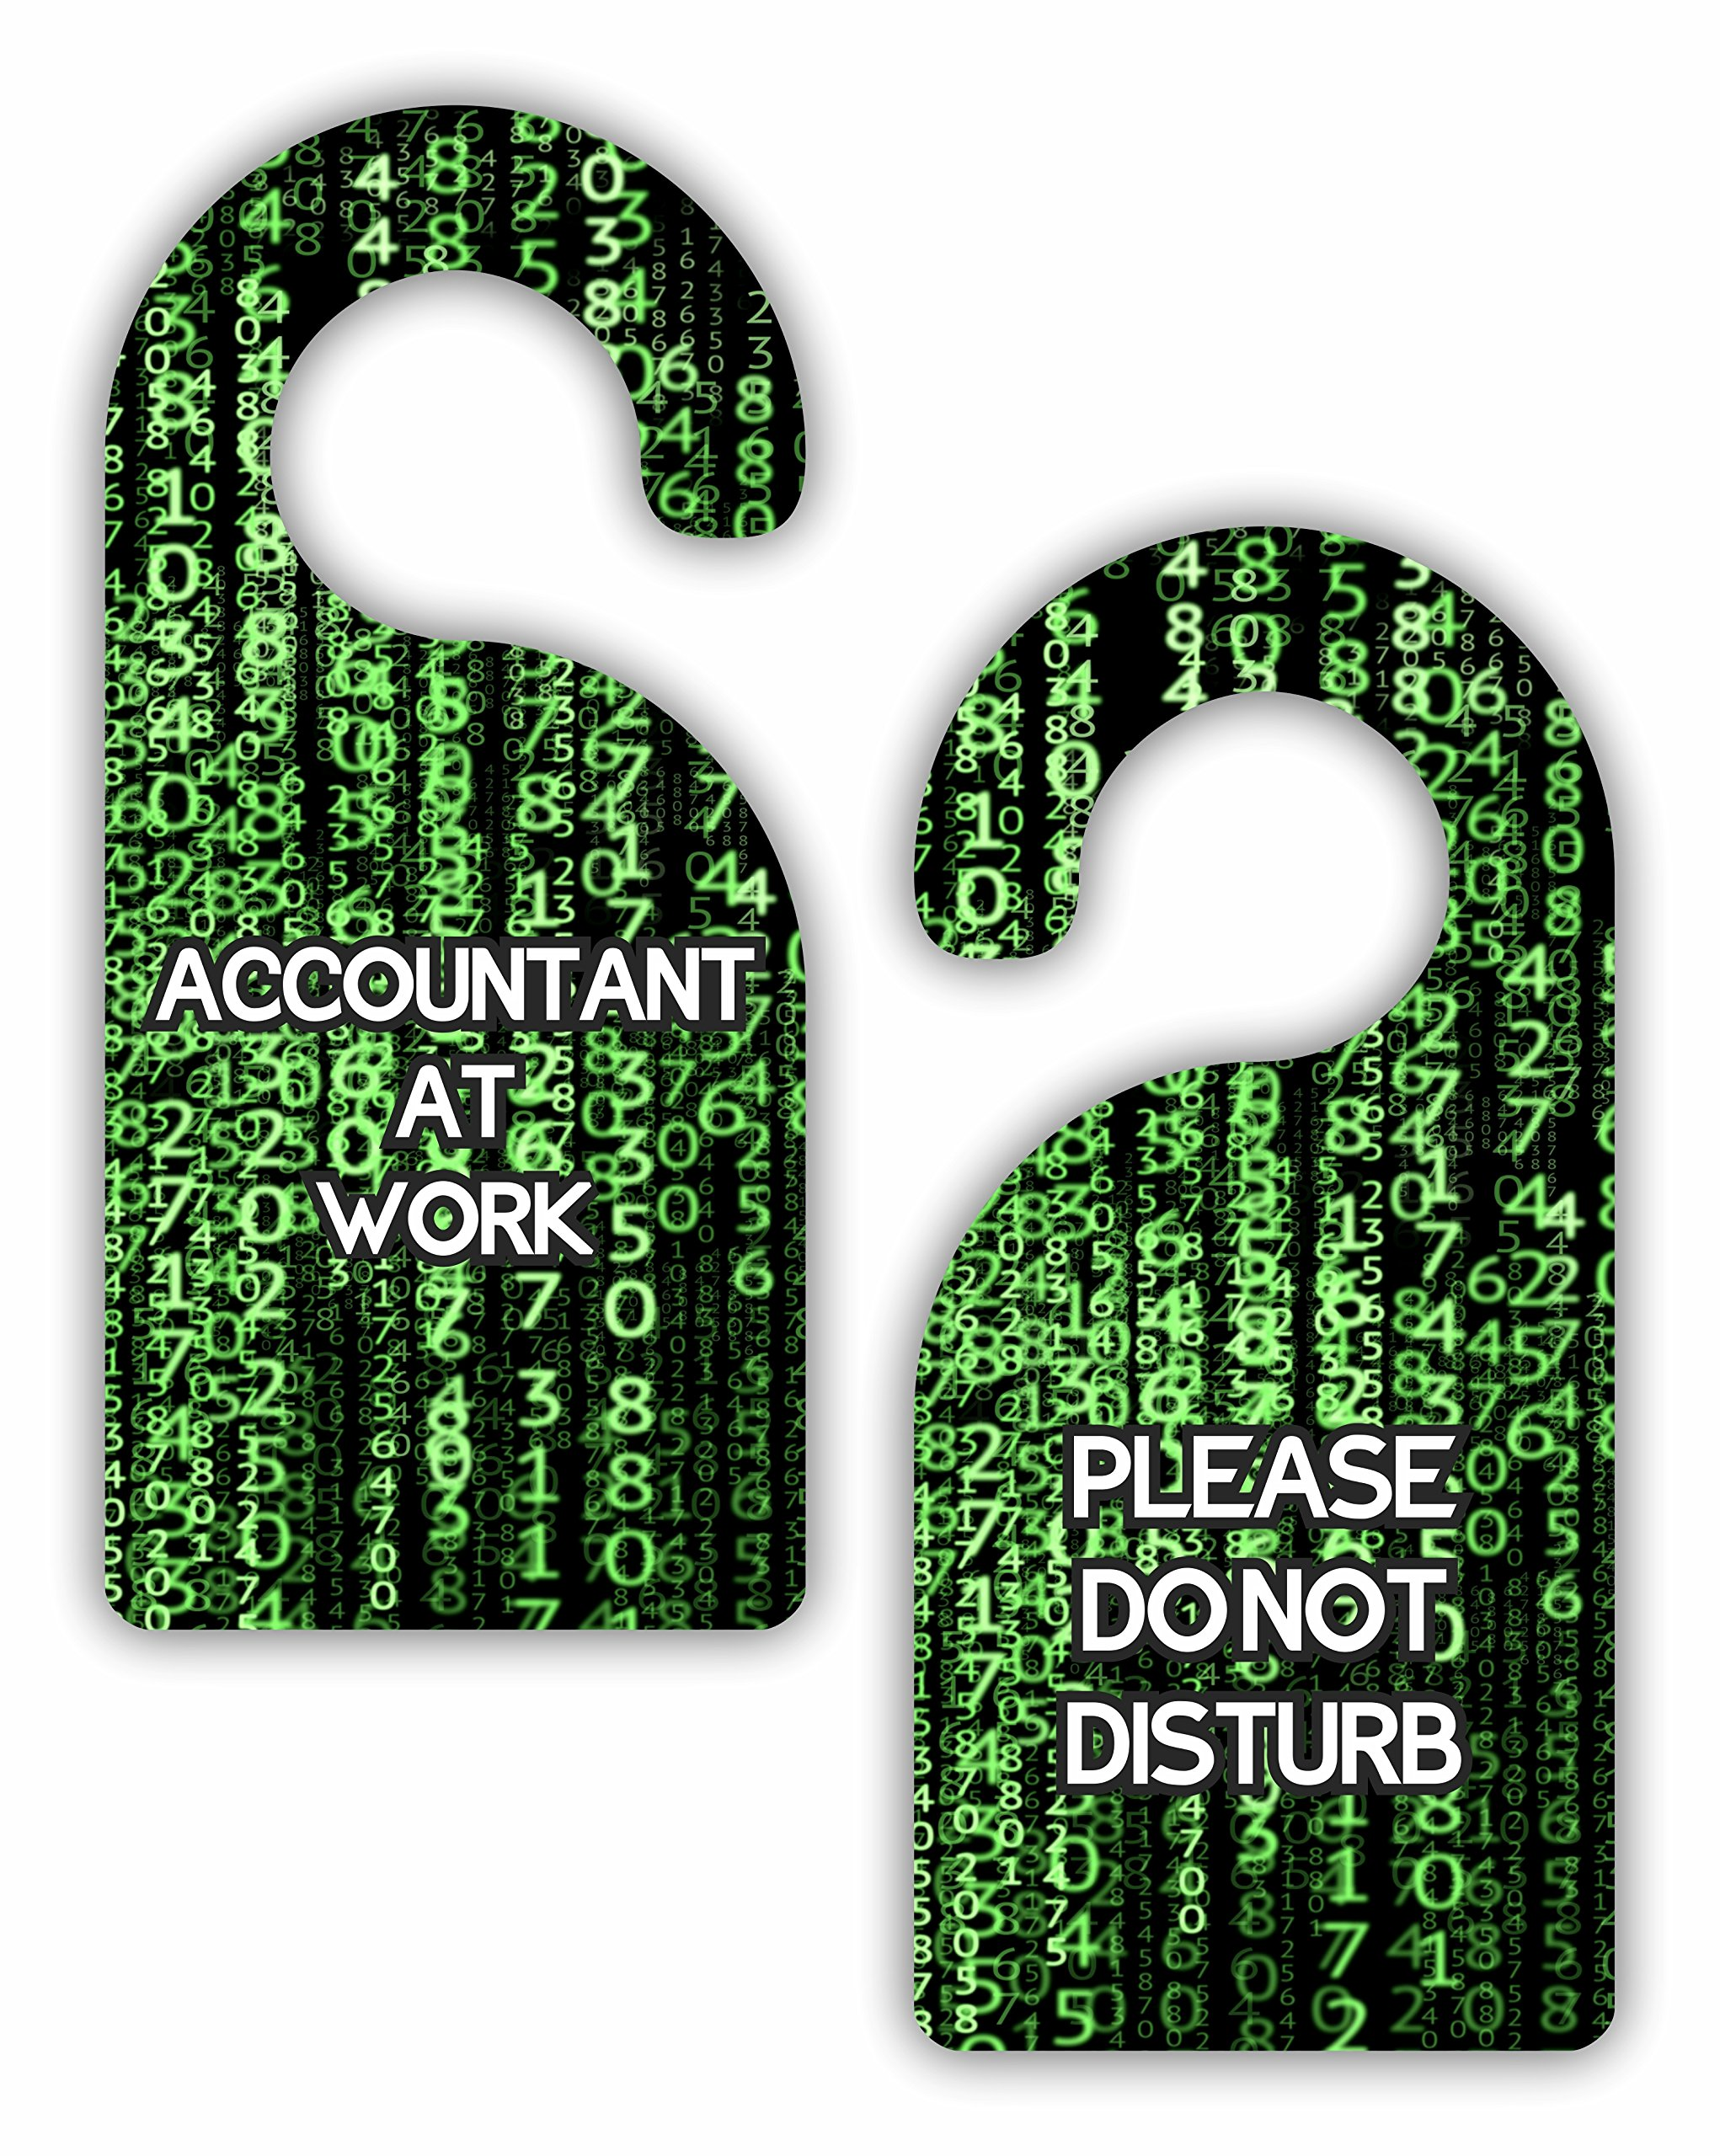 Accountant At Work/Please Do Not Disturb - Accounting - Numbers - Double-Sided Hard Plastic Glossy Door Hanger by Lea Elliot (Image #1)